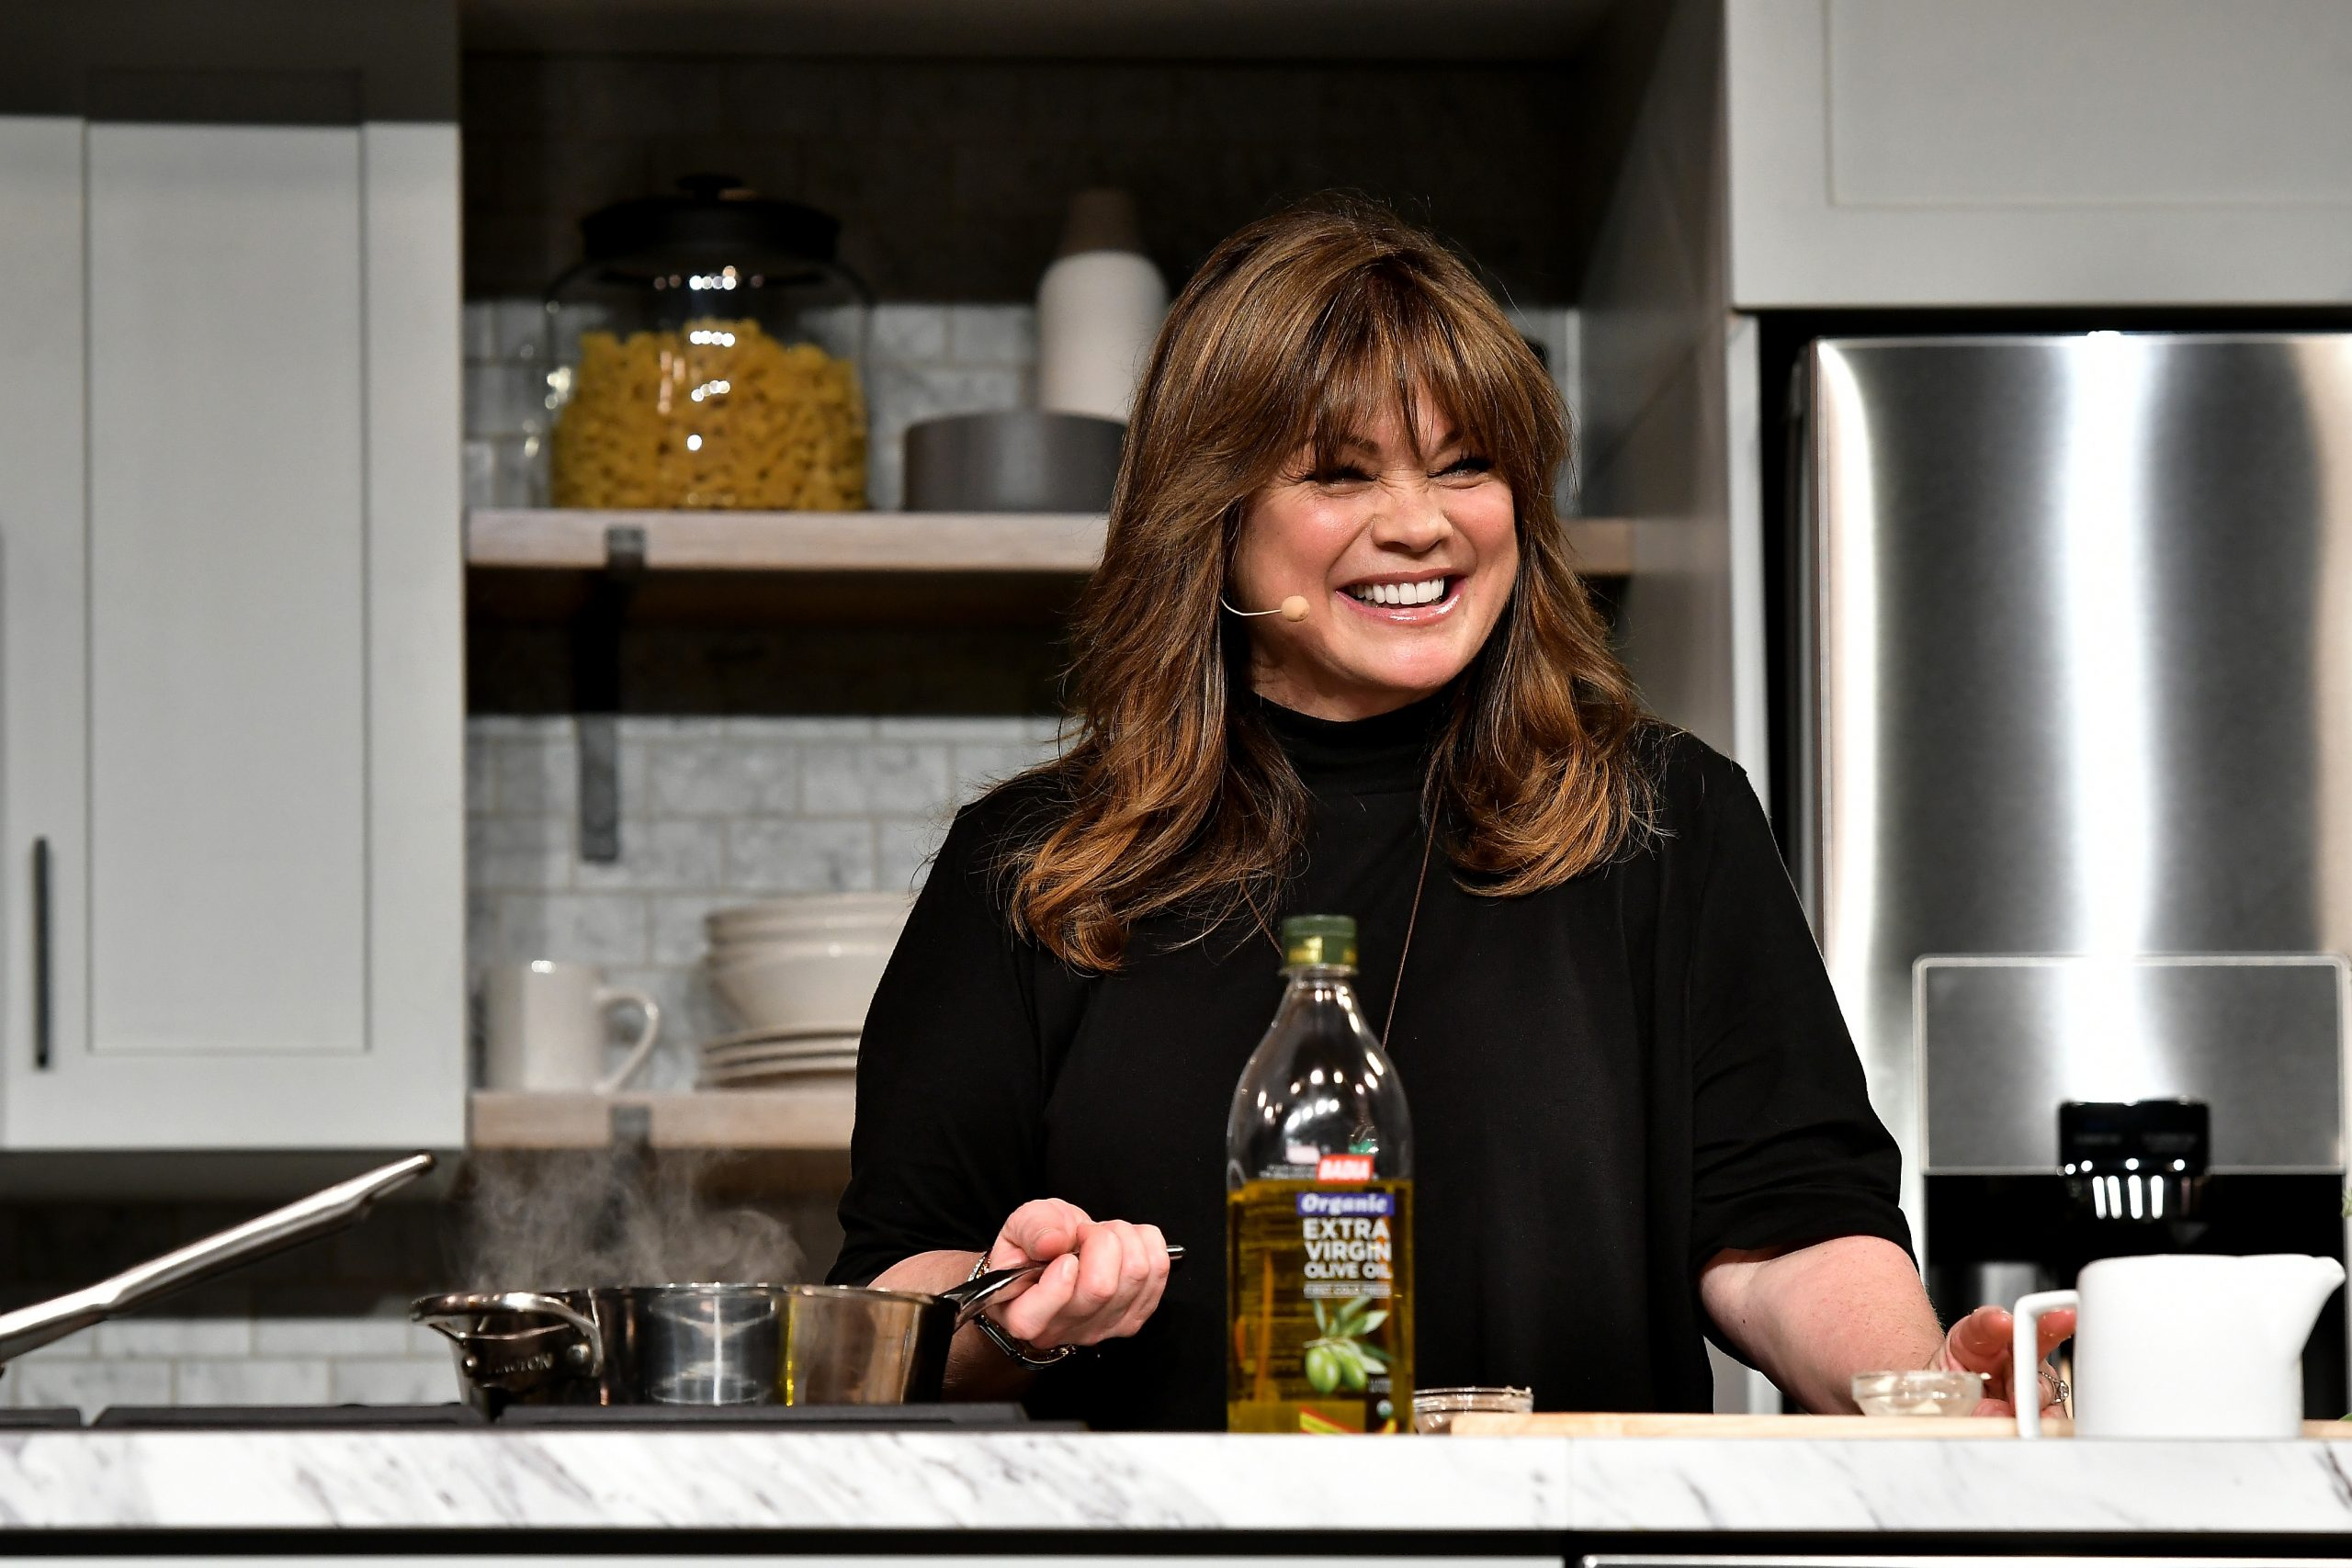 Food Network personality Valerie Bertinelli prepares a meal at a network-hosted event in 2017.